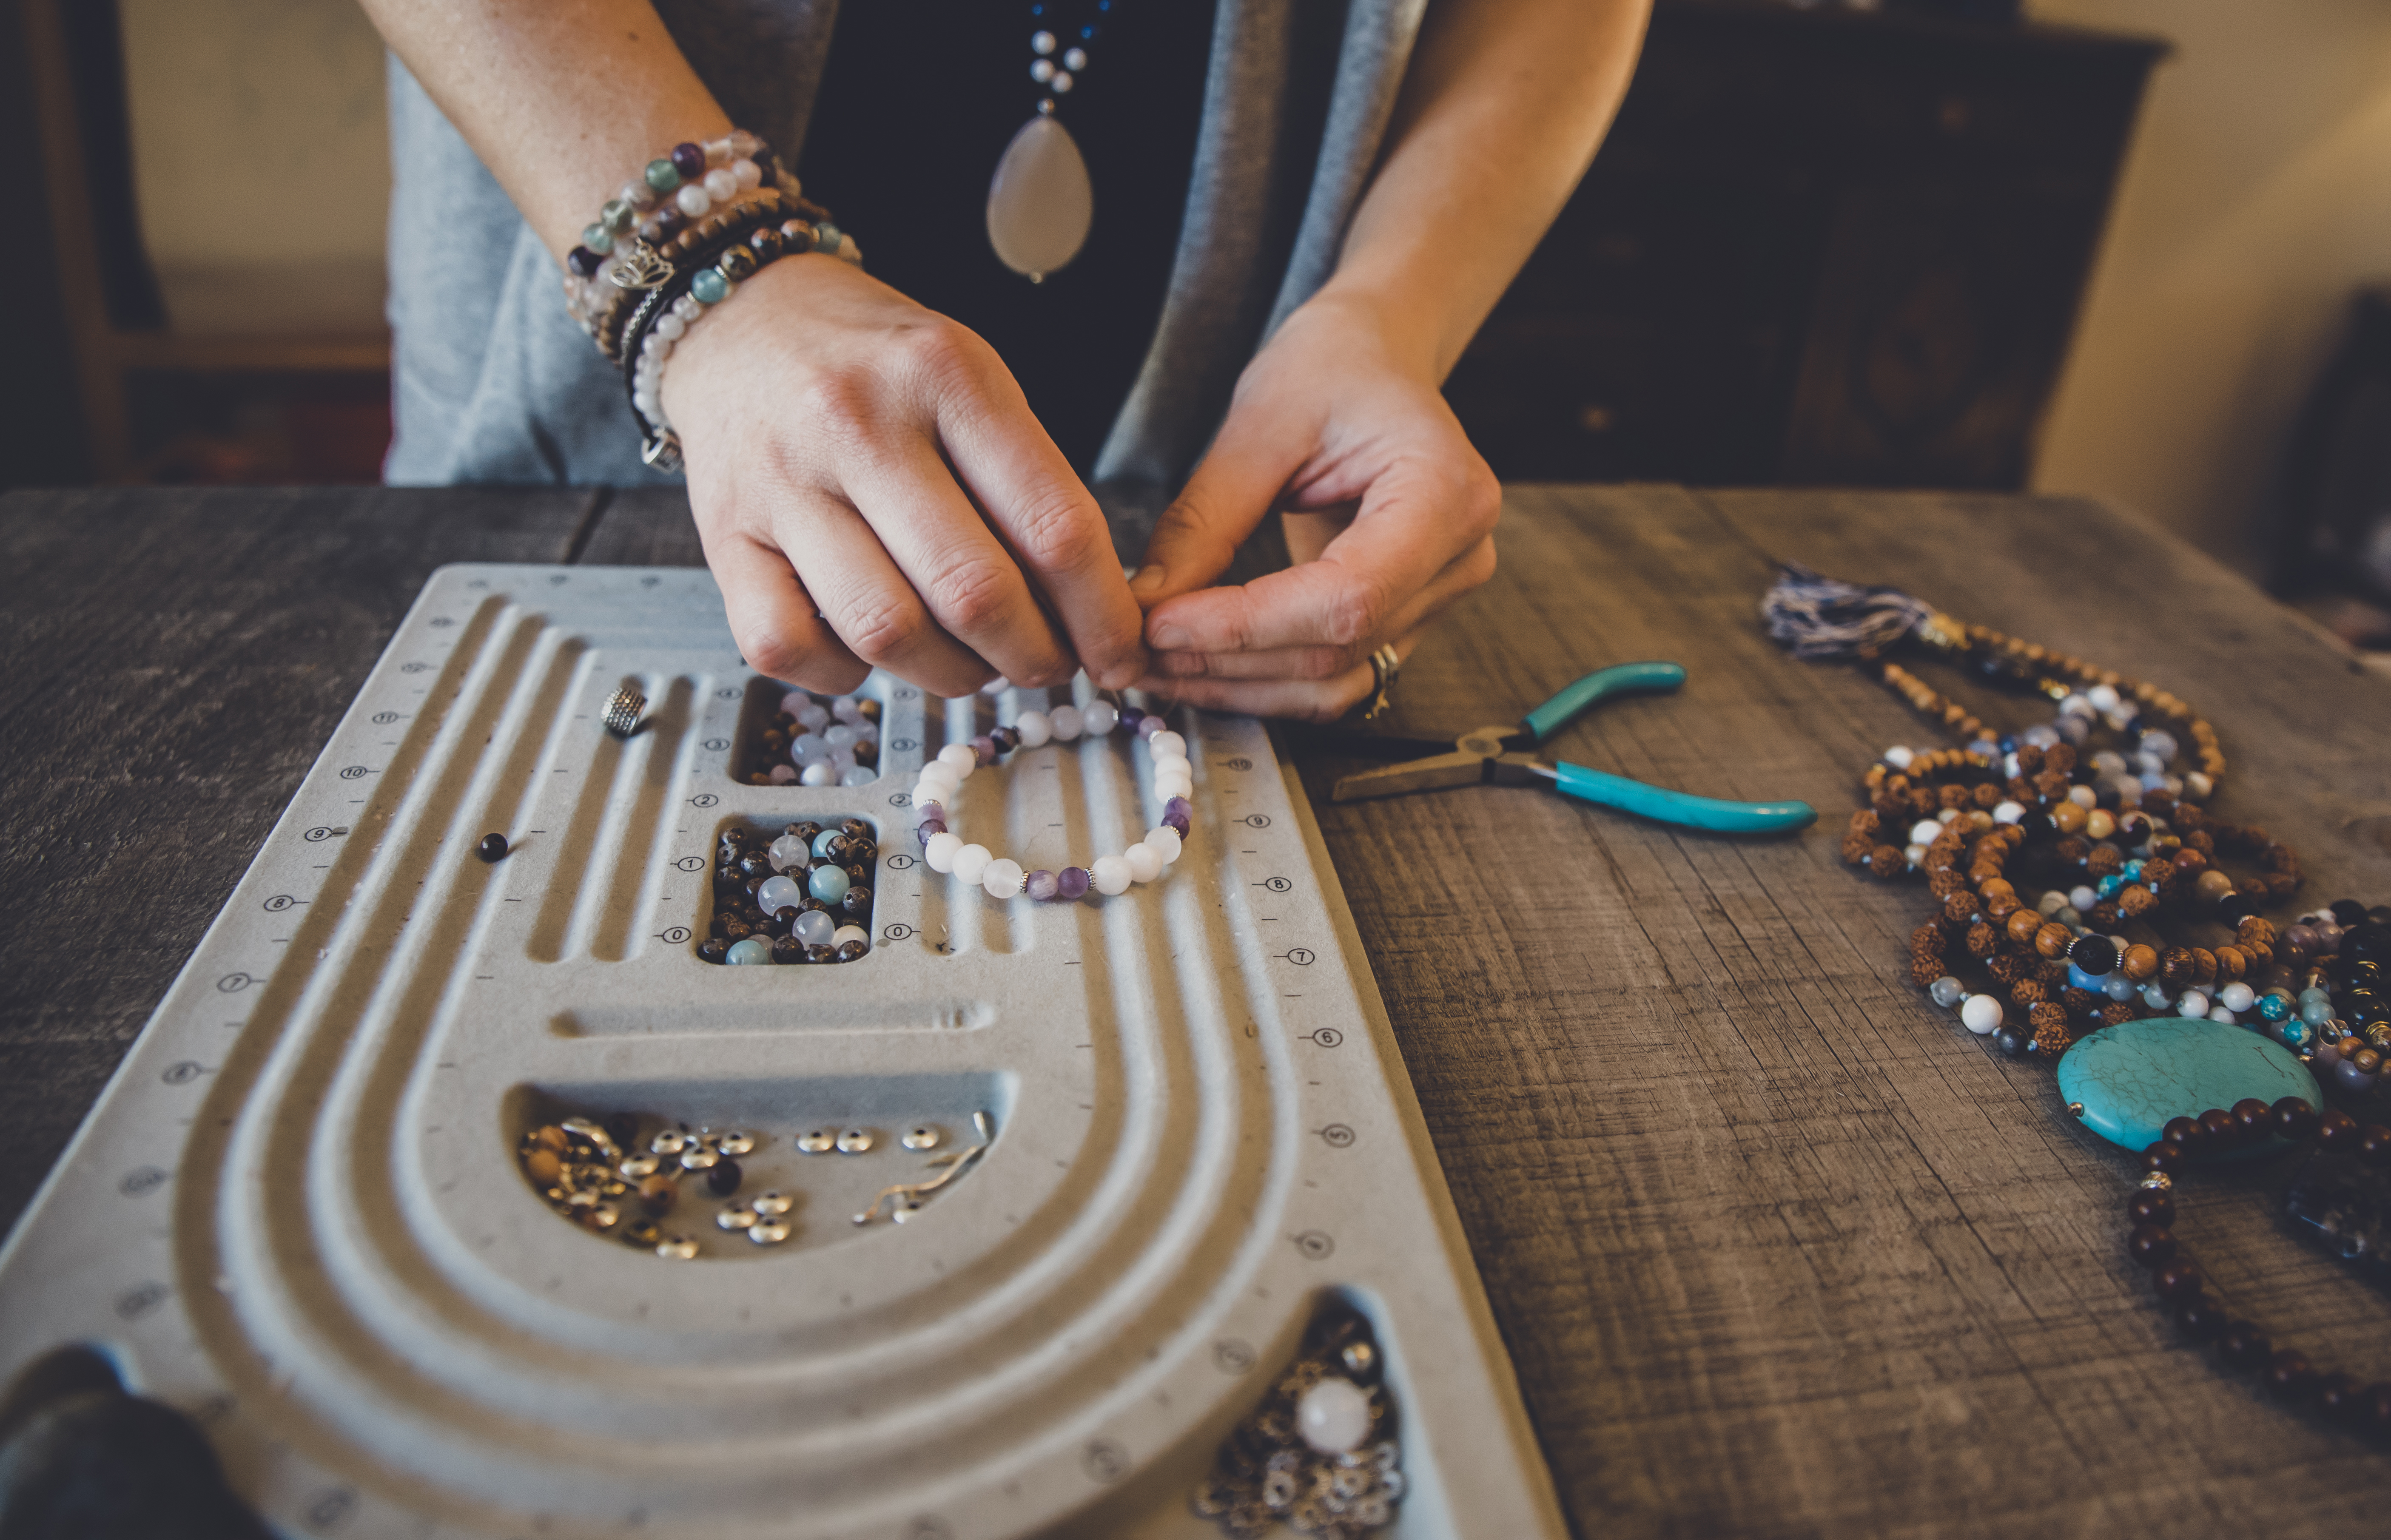 How to Make a Cast Mold for Gold Jewelry | Career Trend